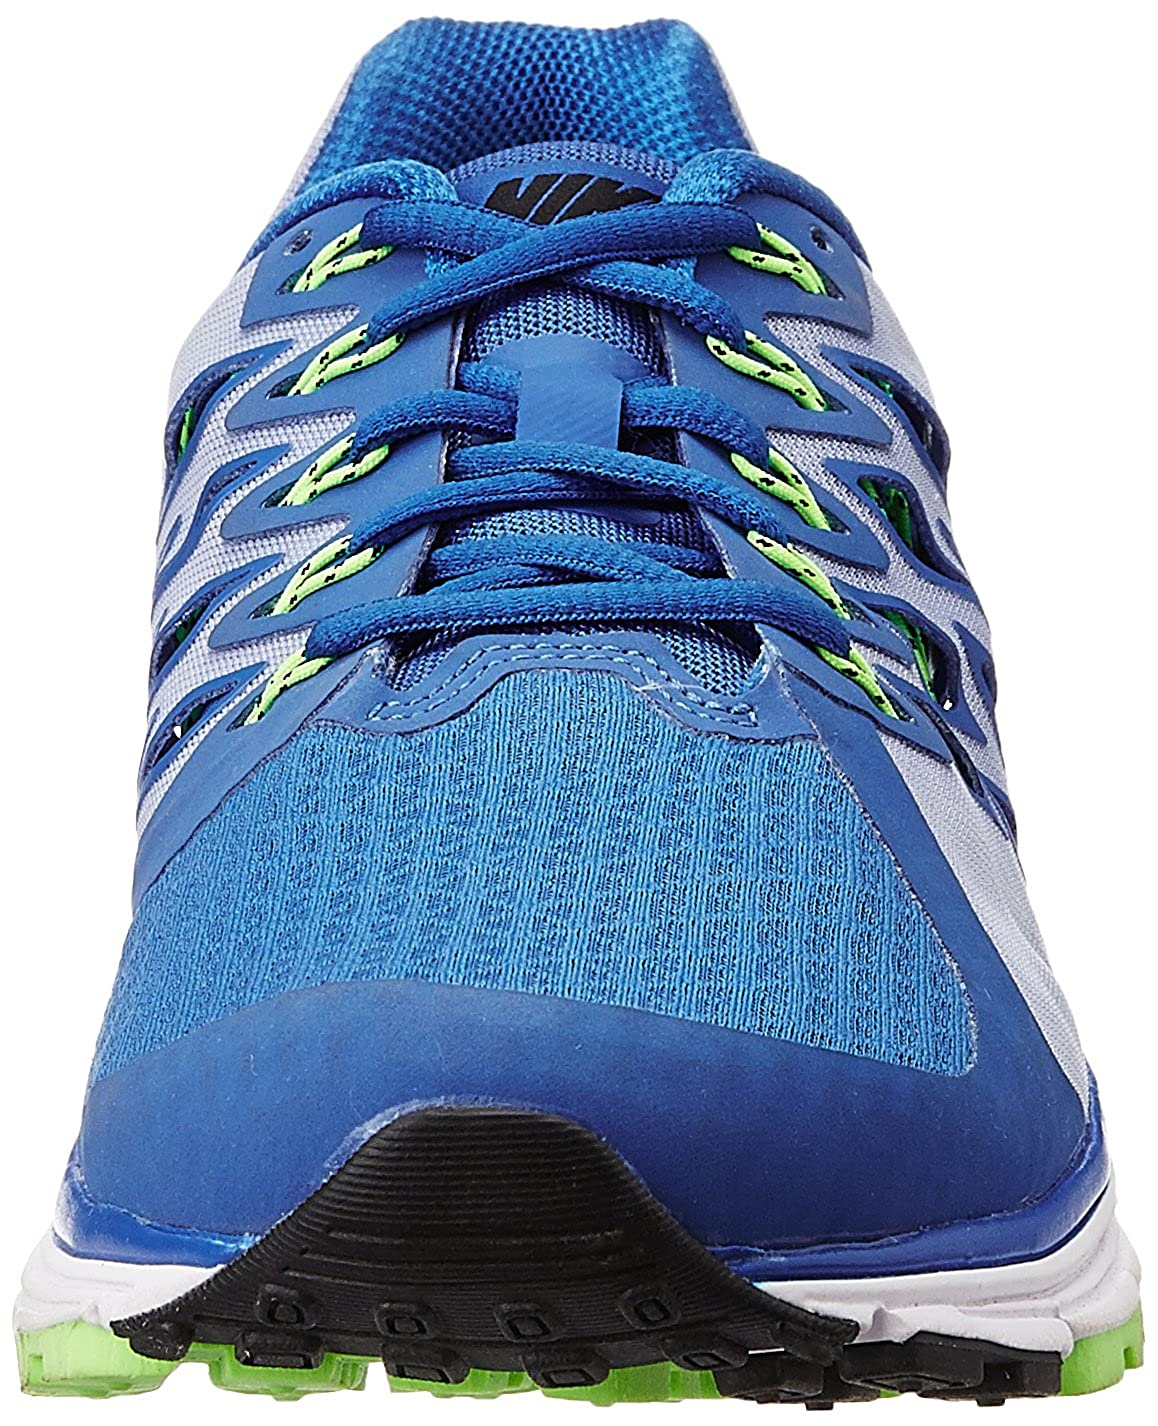 size 40 887a2 5bb04 Nike Men s Zoom Vomero 9 Lyon Blue, Black, White, Flash Lime Running Shoes  -8 UK India (42.5 EU)(9 US)  Buy Online at Low Prices in India - Amazon.in